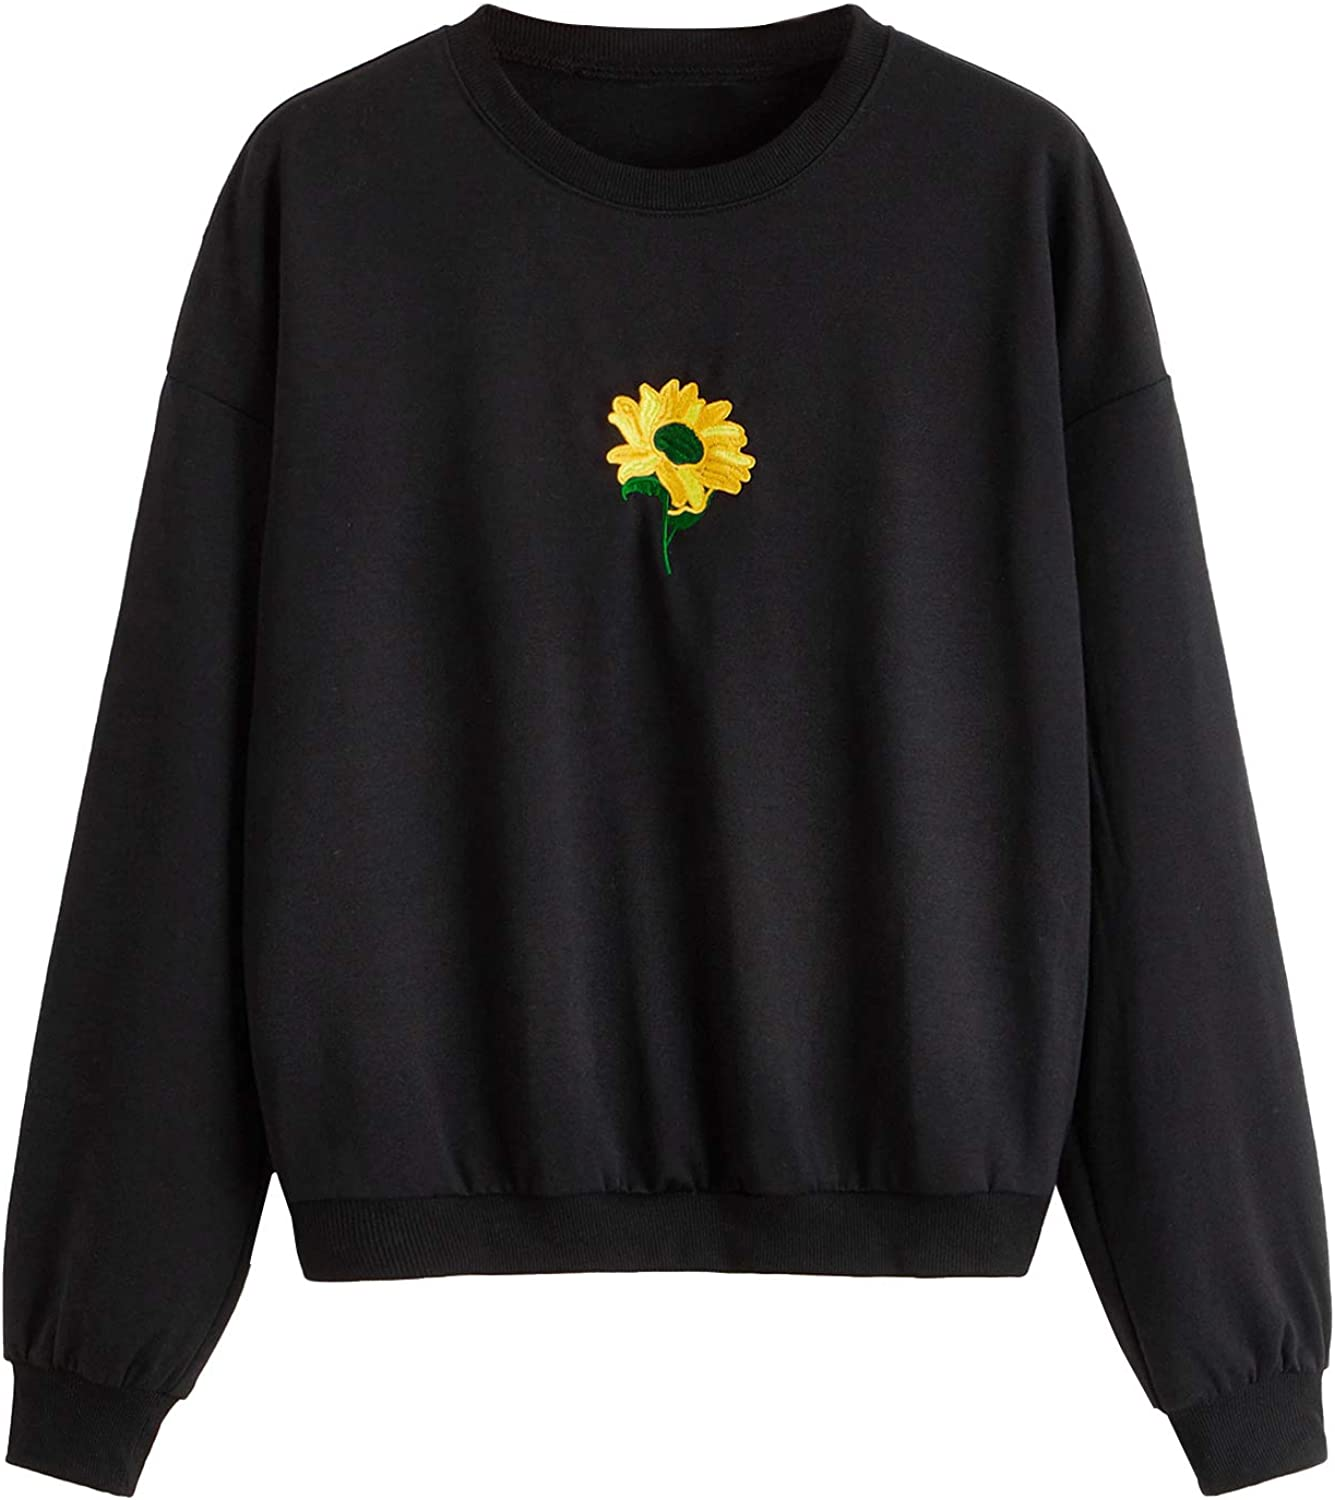 SOLY HUX Women's Casual Floral Embroidery Long Sleeve Round Neck Pullover Sweatshirt